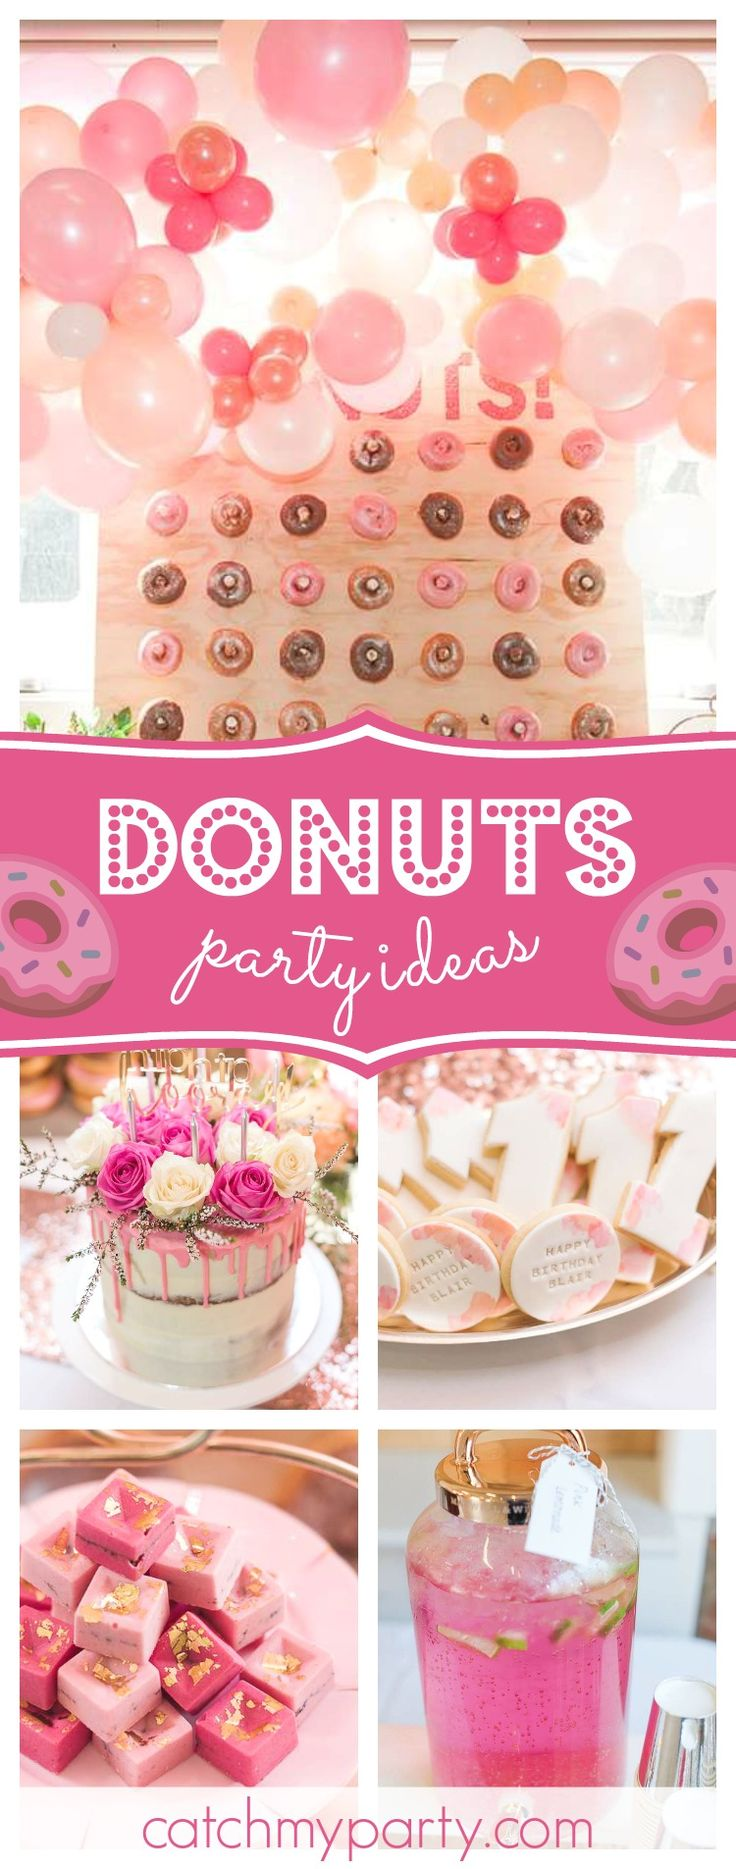 Take a look at this wonderful Punch of Pink Donut birthday party! The birthday cake is amazing!! See more party ideas and share yours at CatchMyParty.com  #donuts #birthdayparty